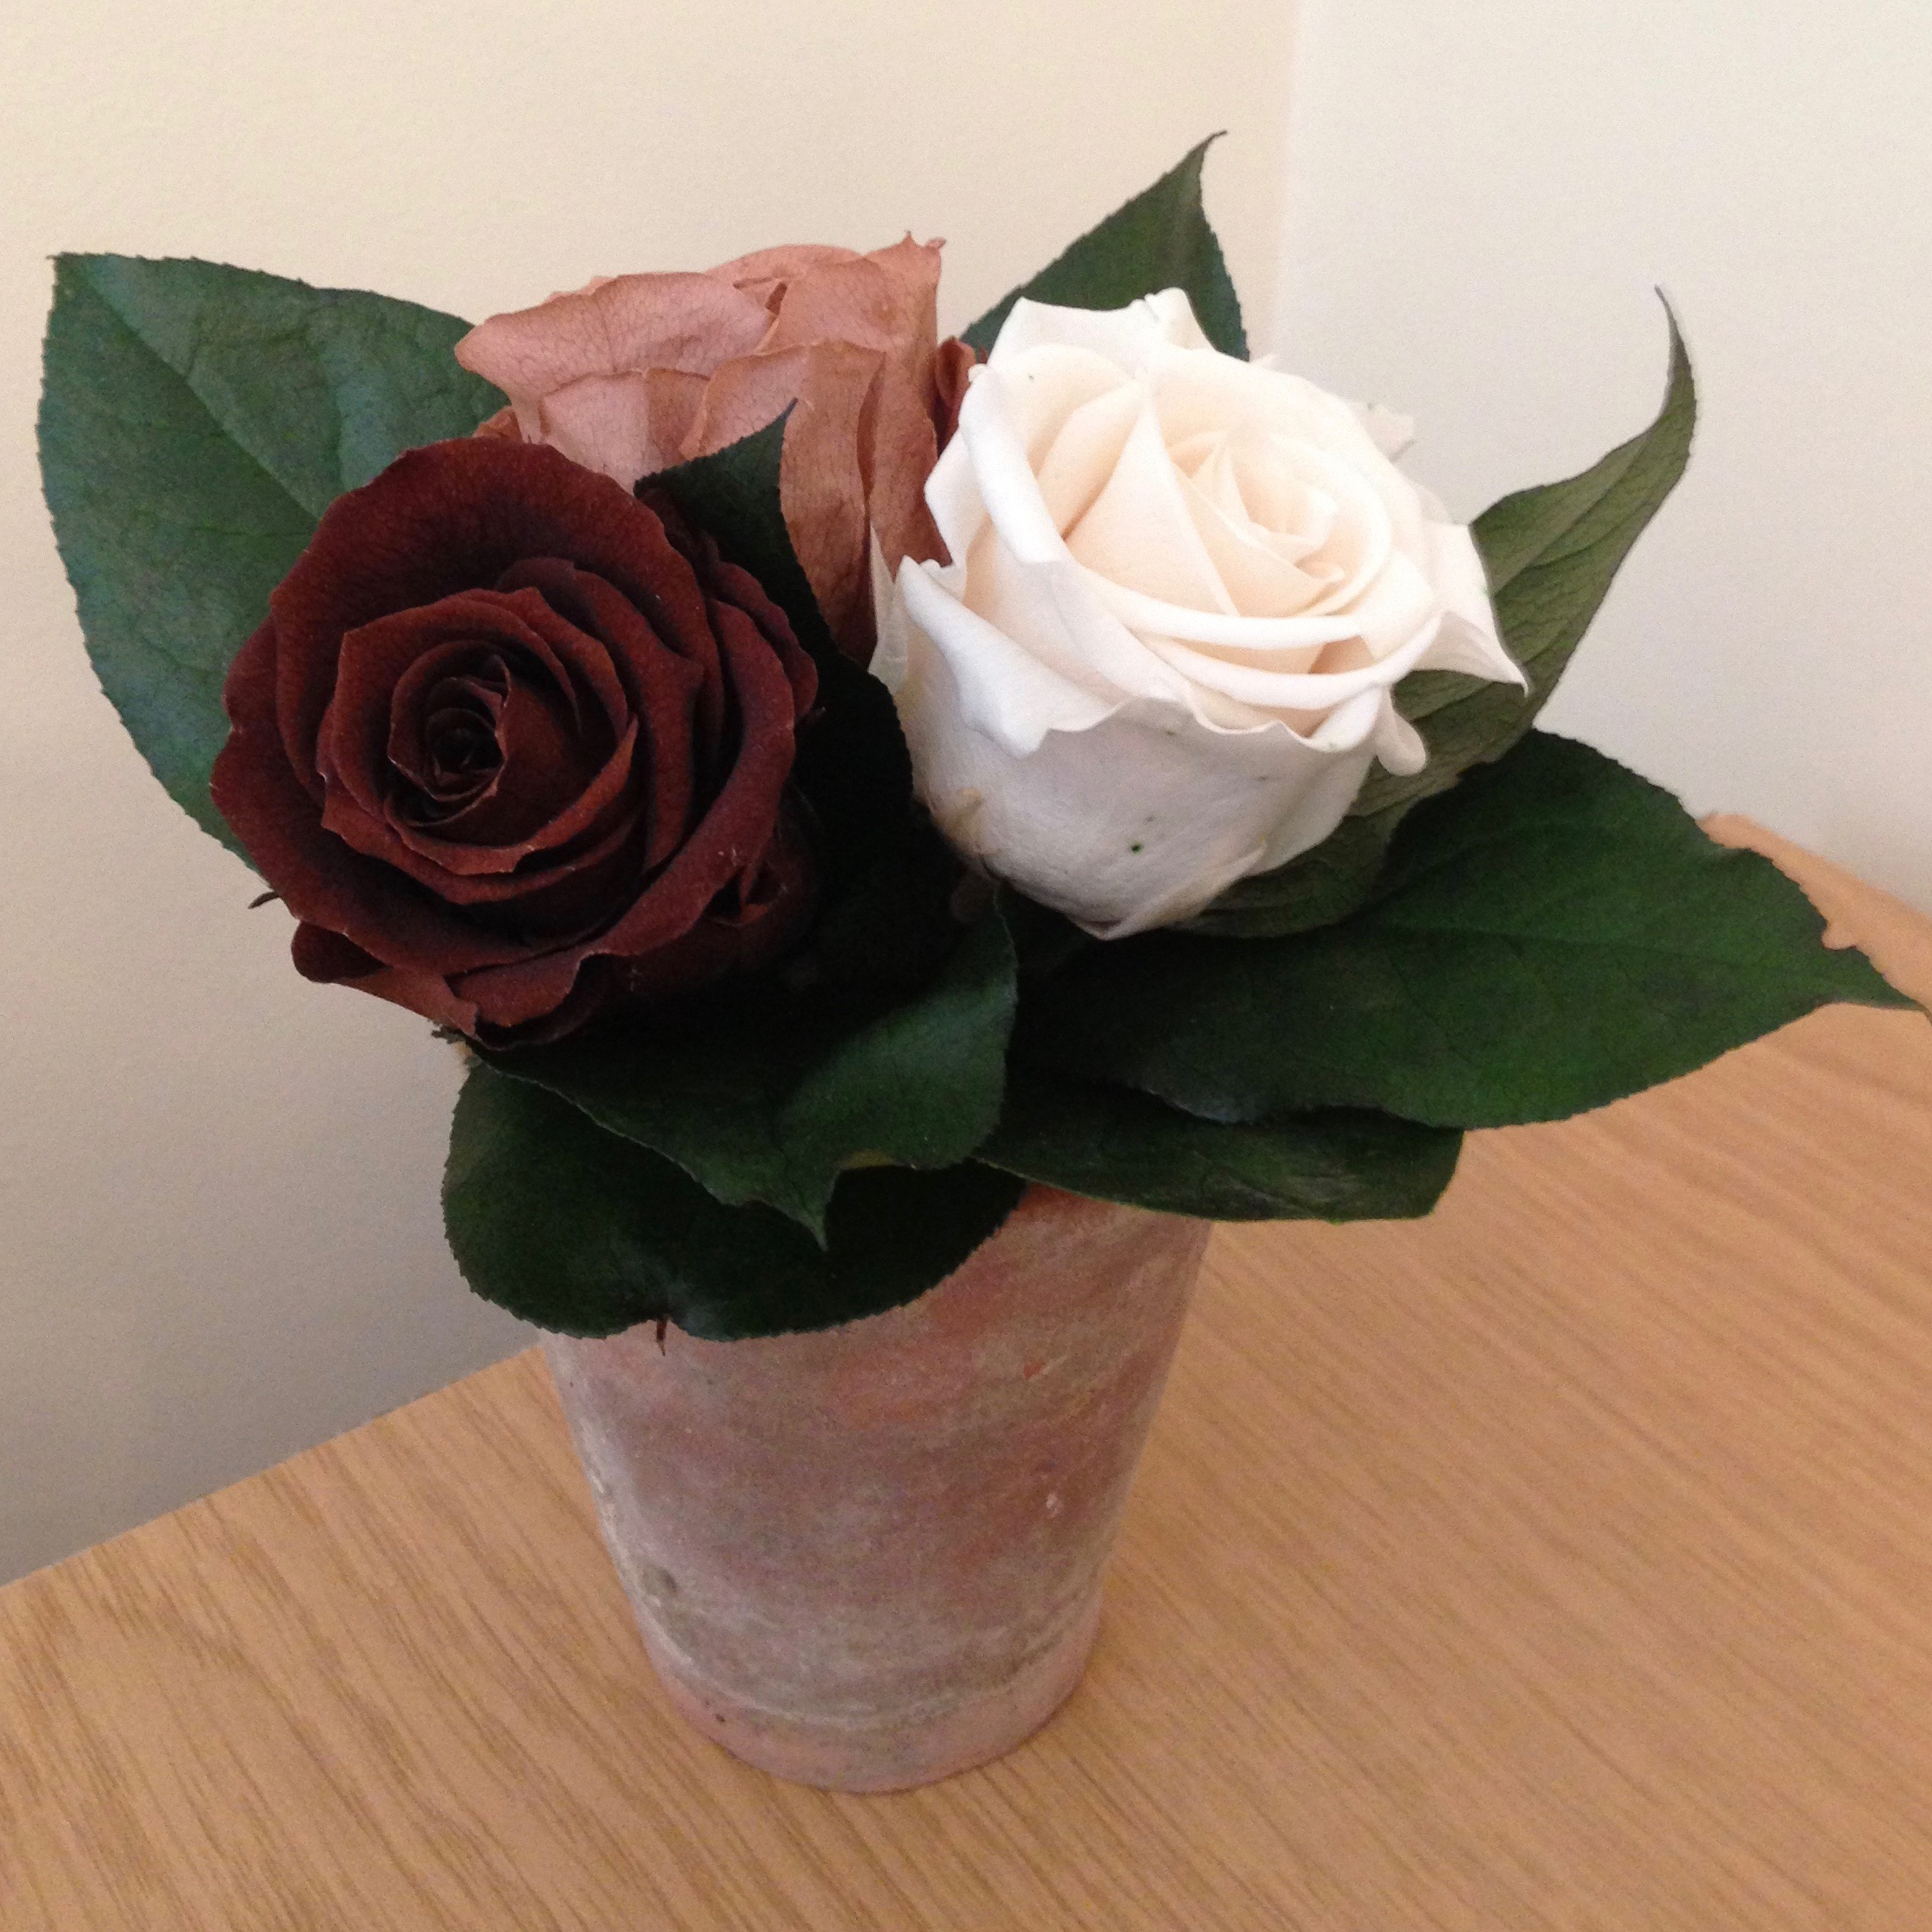 Cream/natural/brown roses and leaves